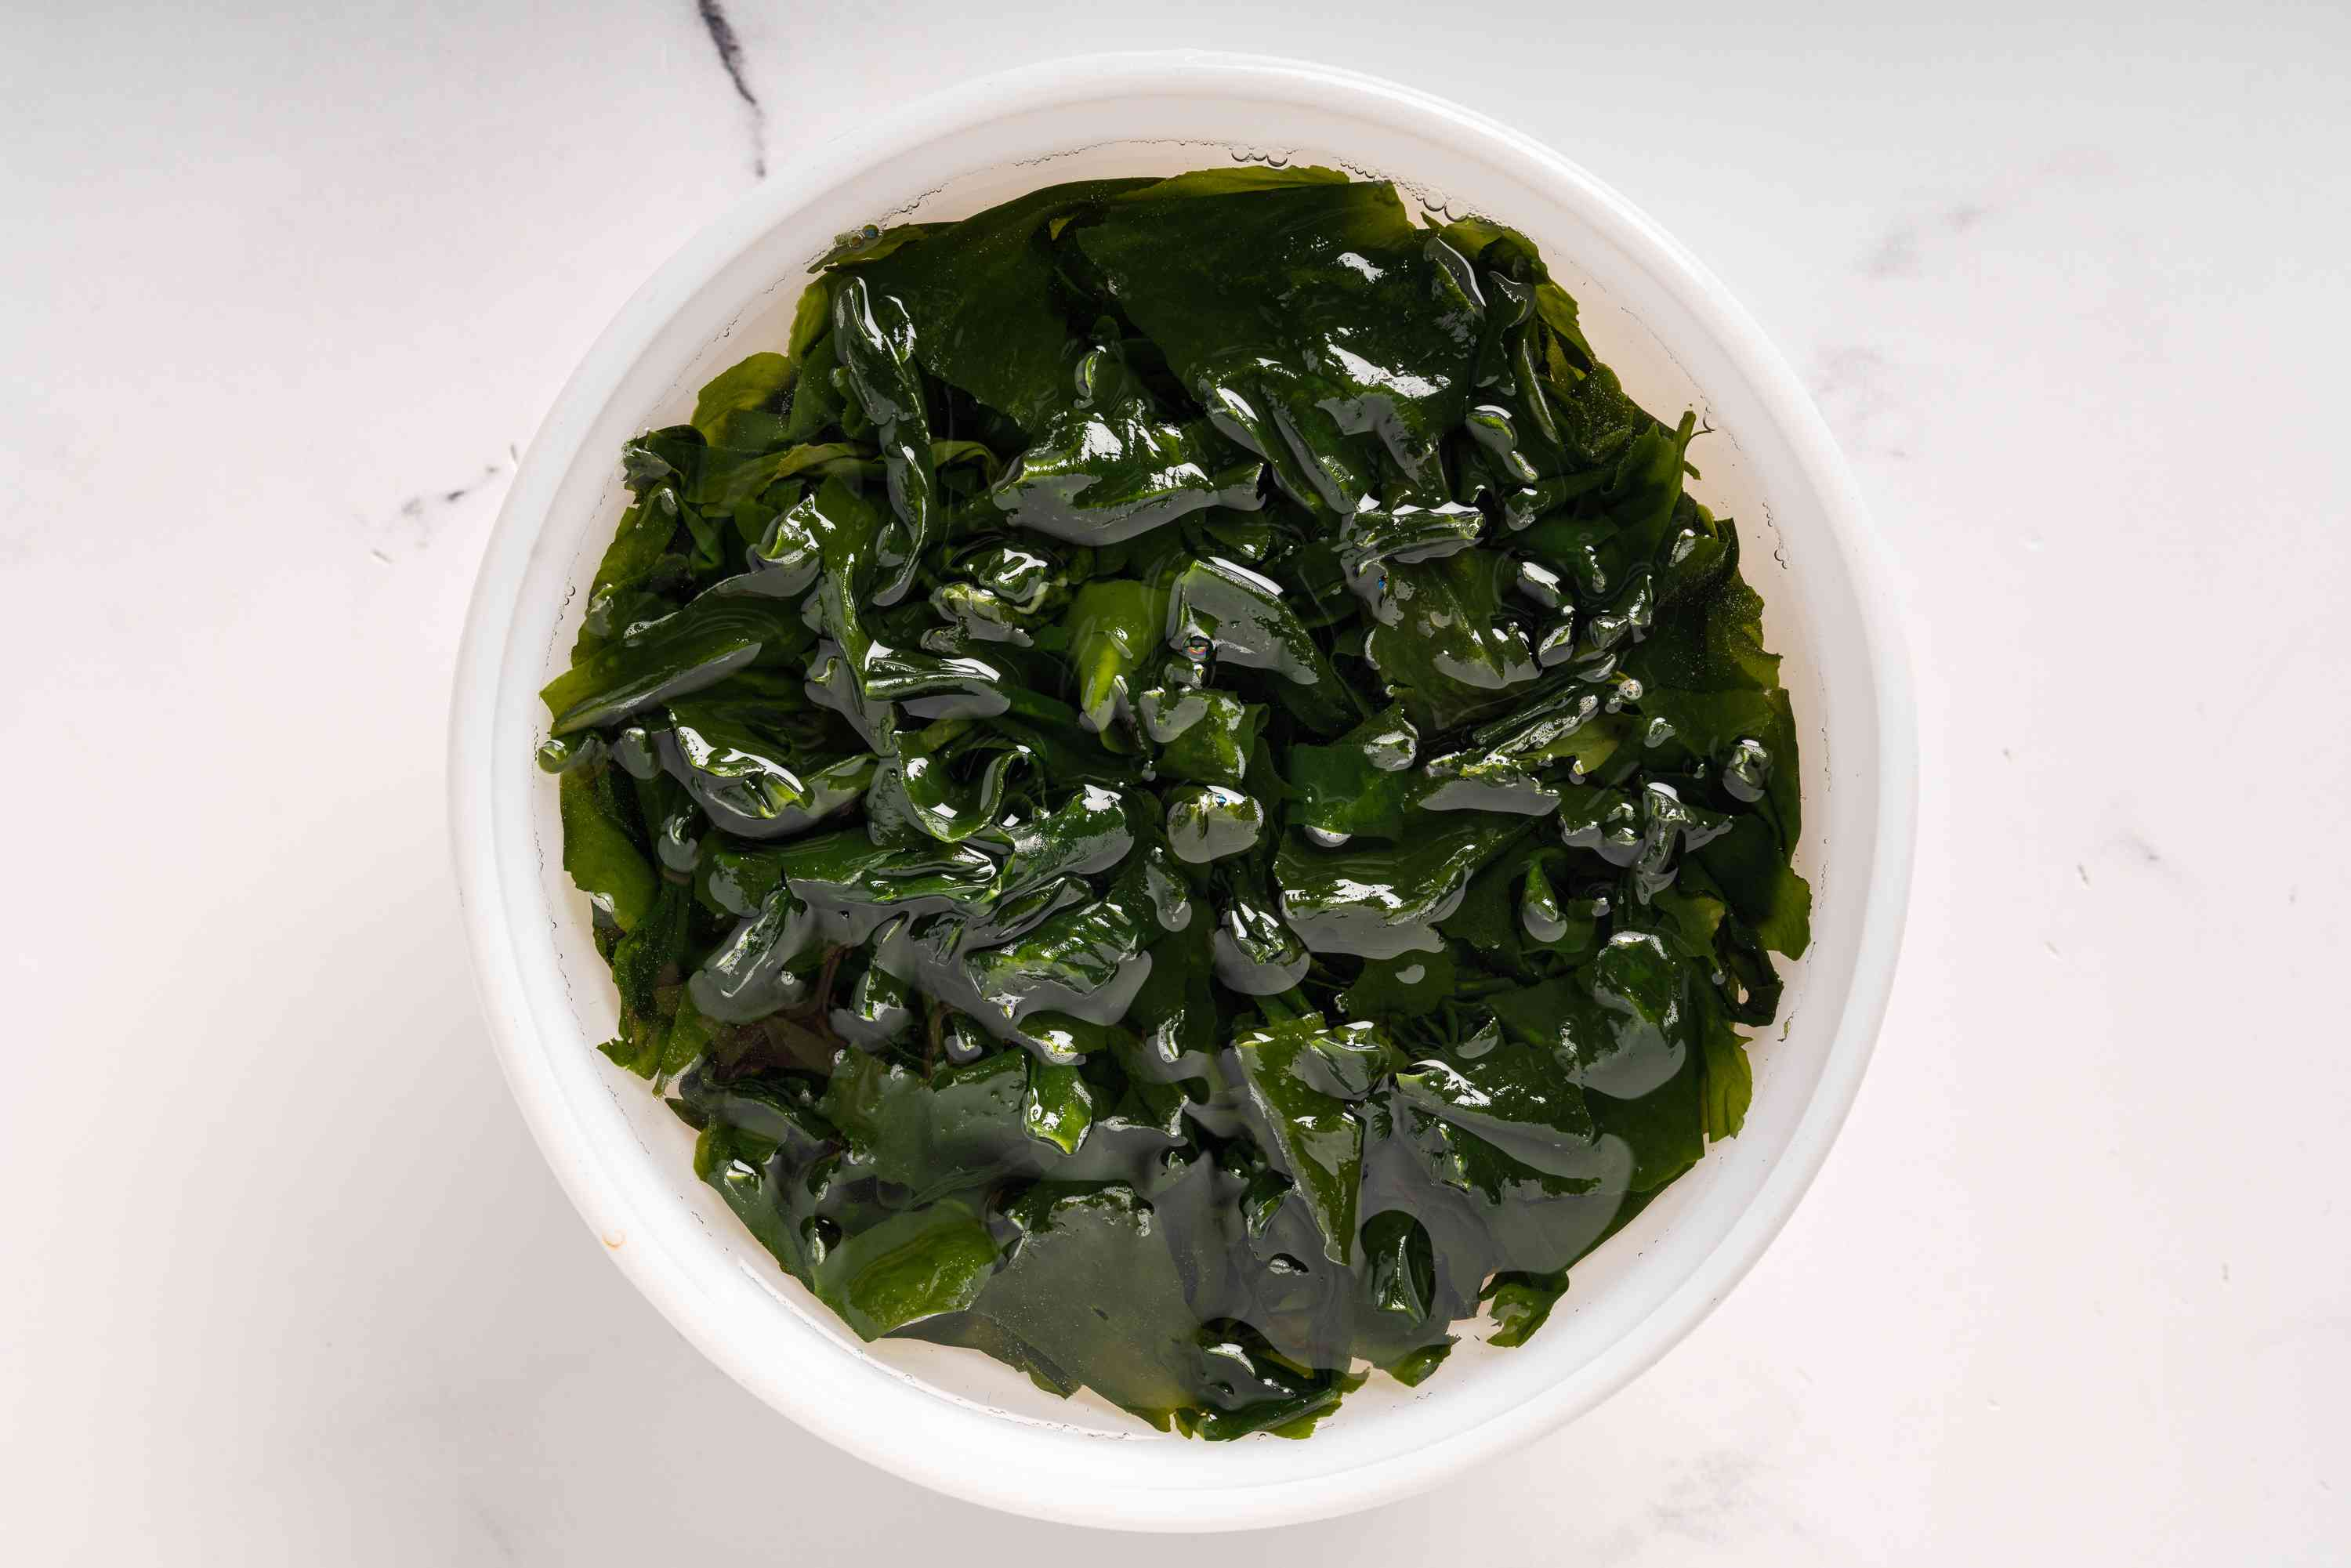 Rehydrate the seaweed by placing in a large bowl with water